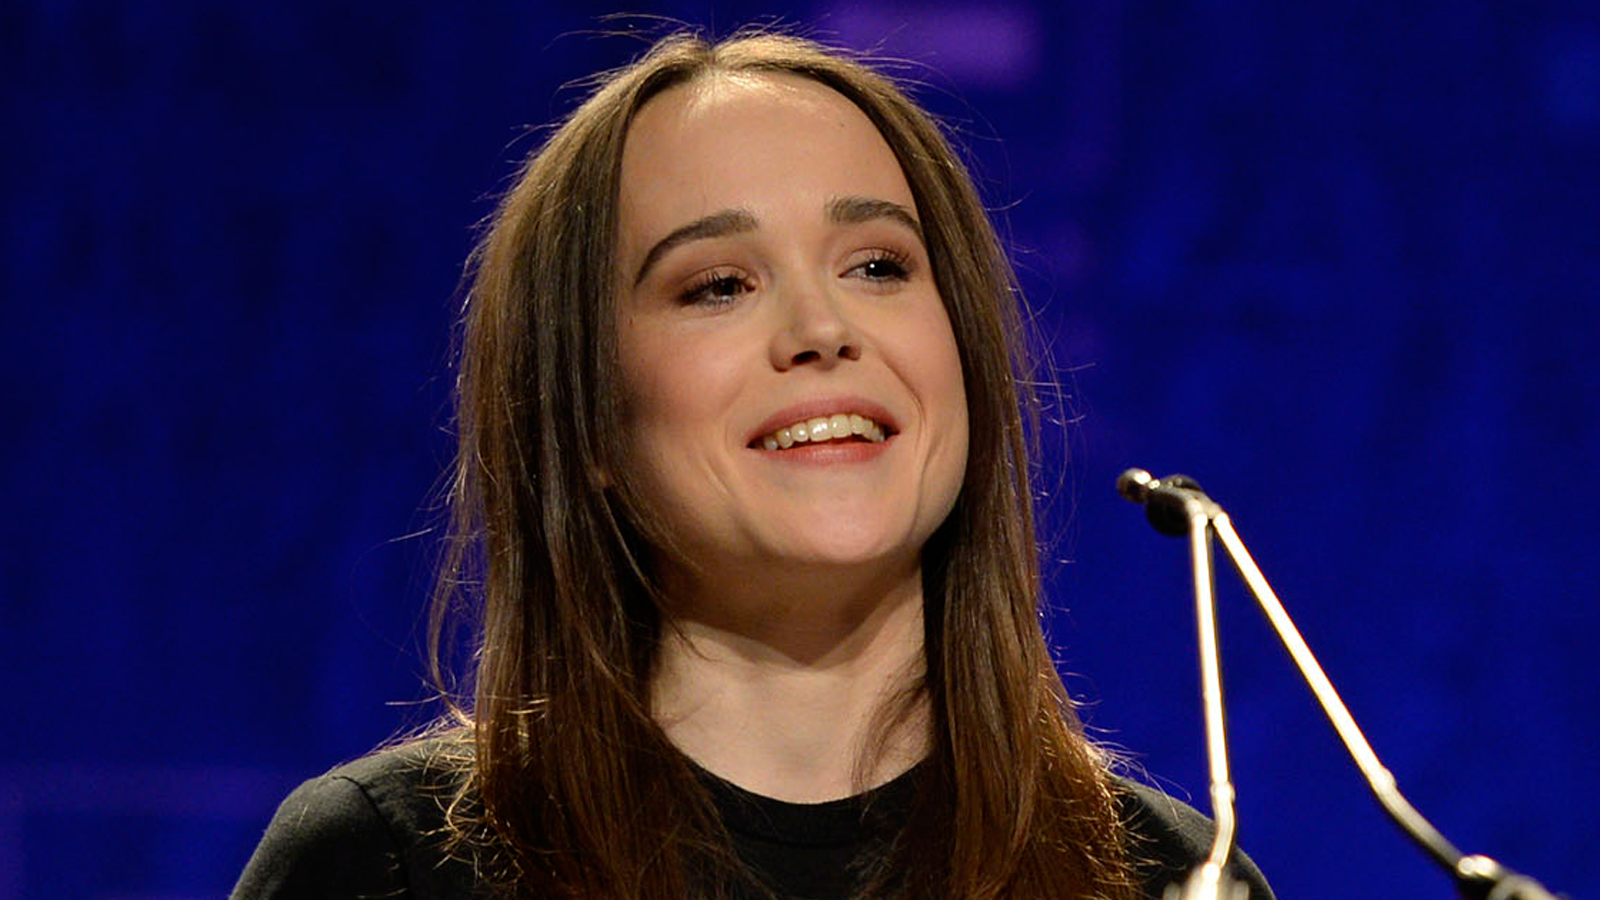 Two Years Since Coming Out, Ellen Page Relishes Living Openly and Authentically